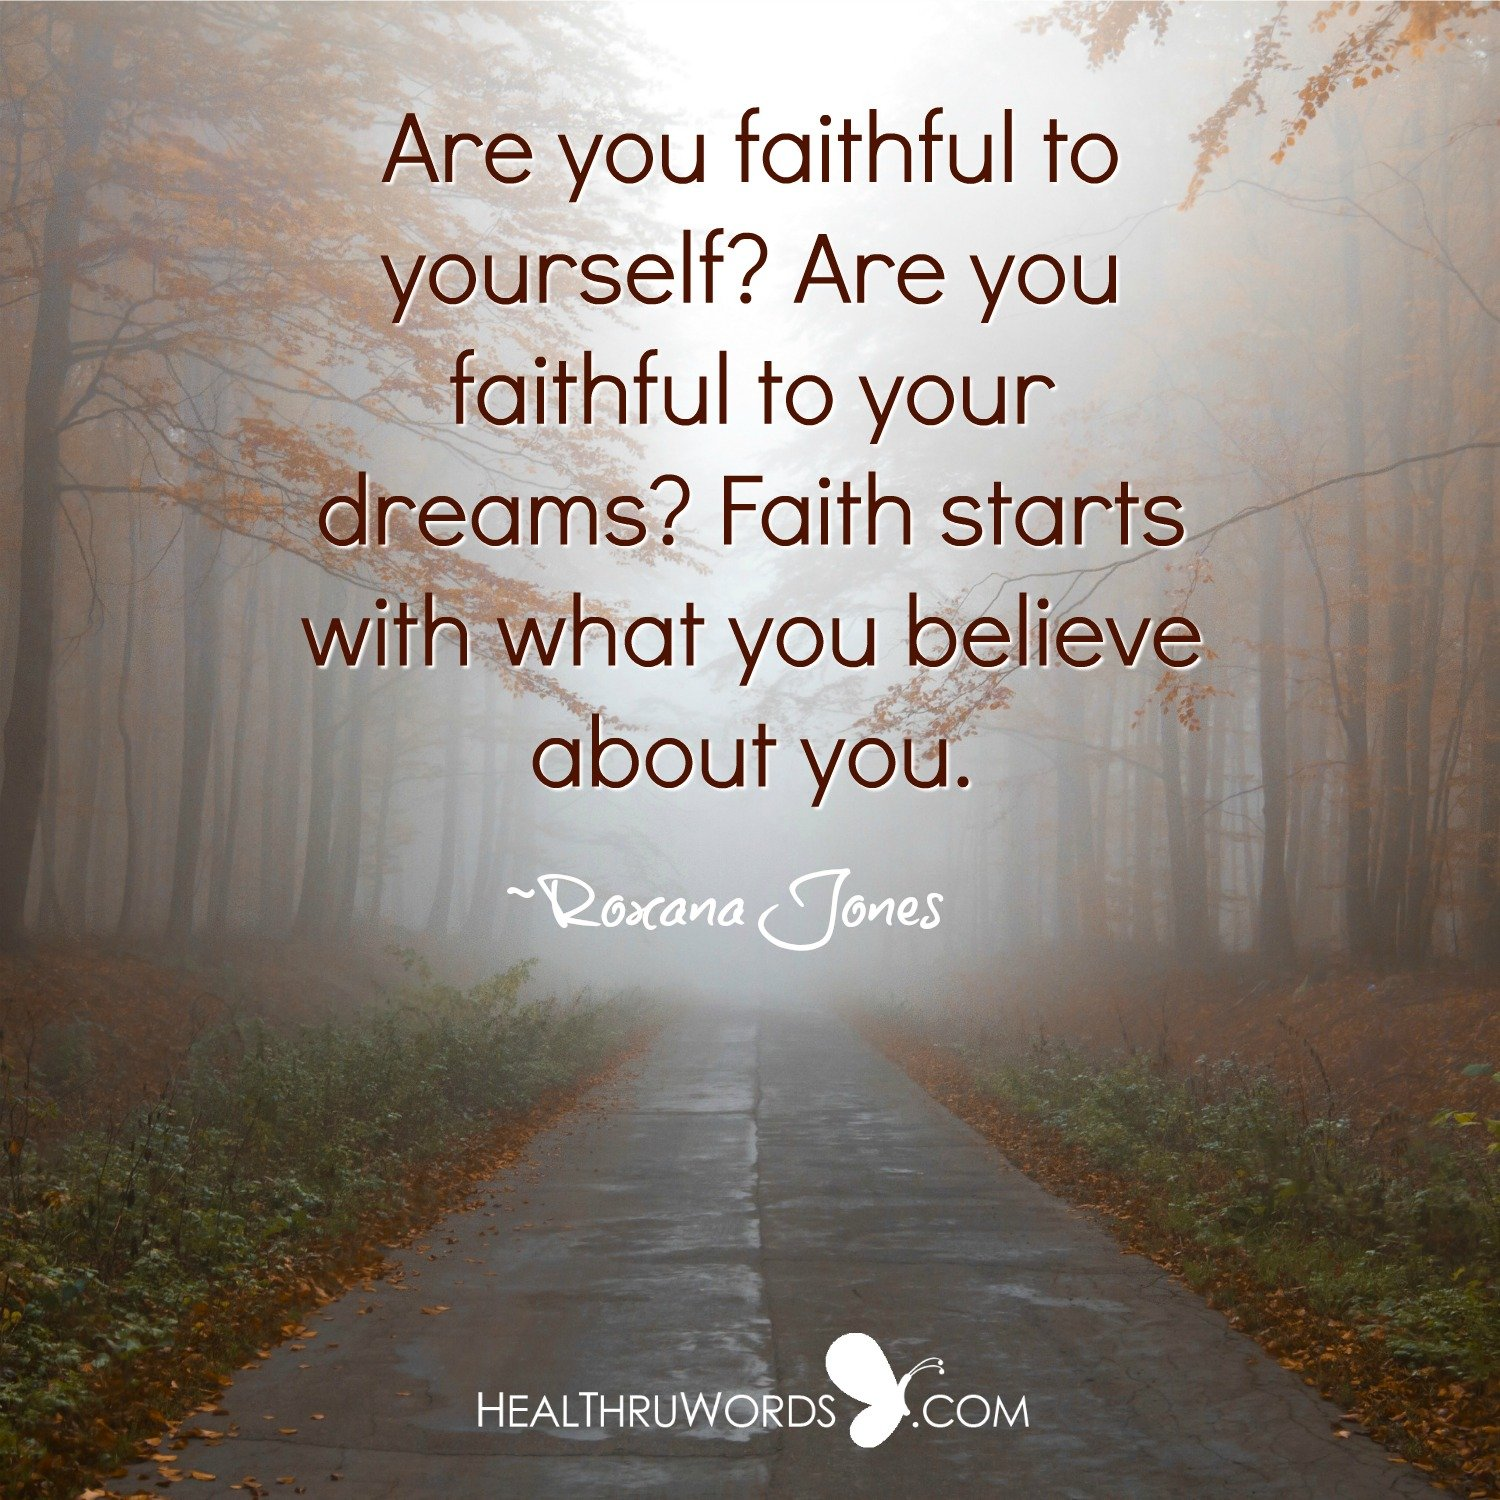 Inspirational Image: Faith in Self